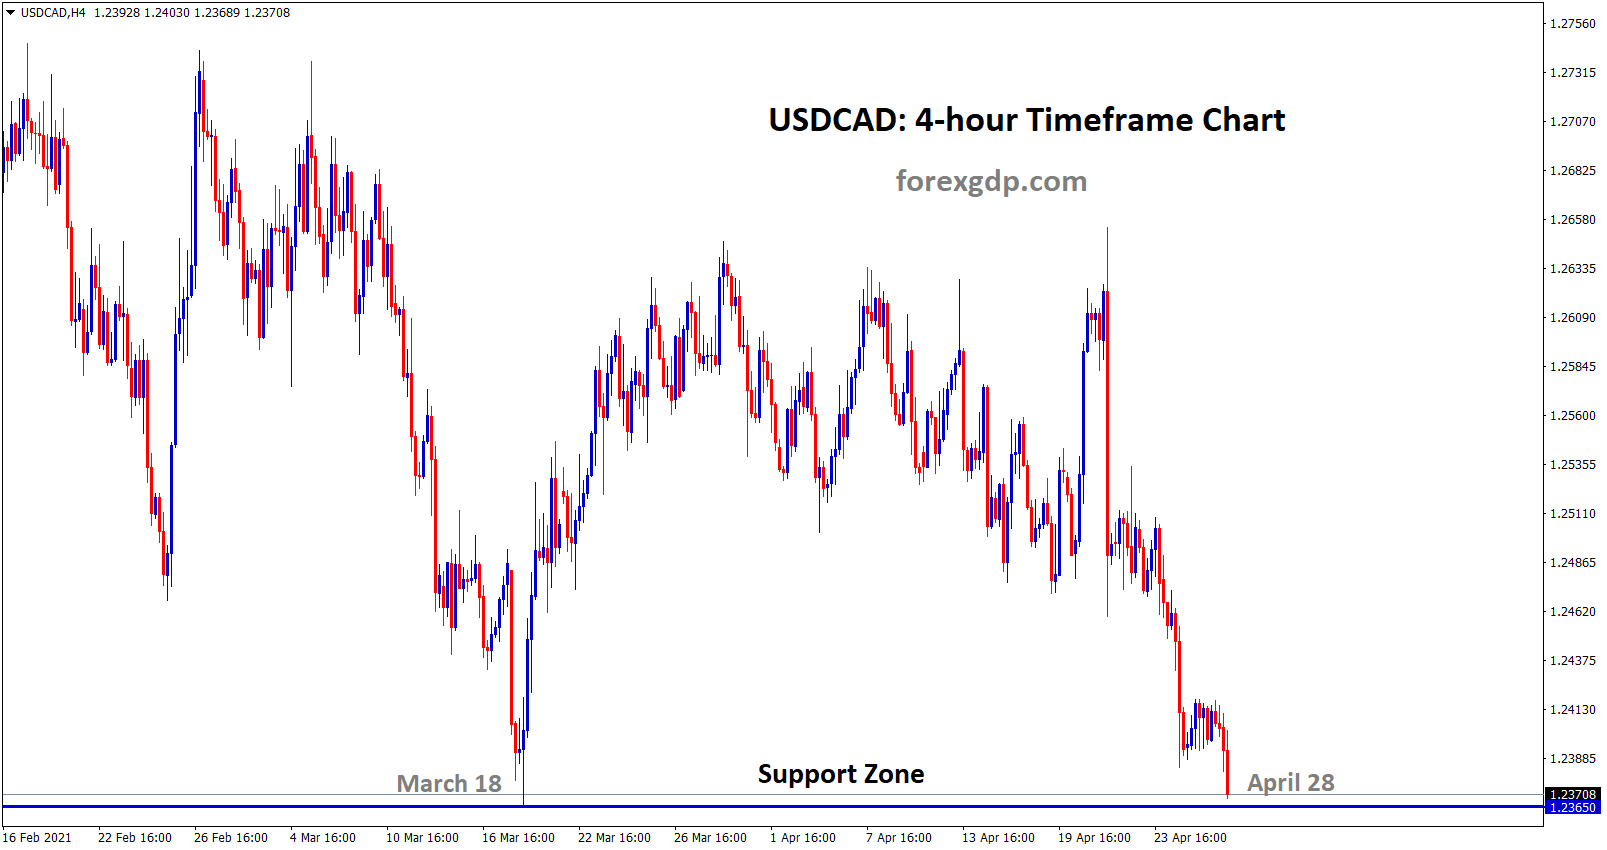 USDCAD at the key support level